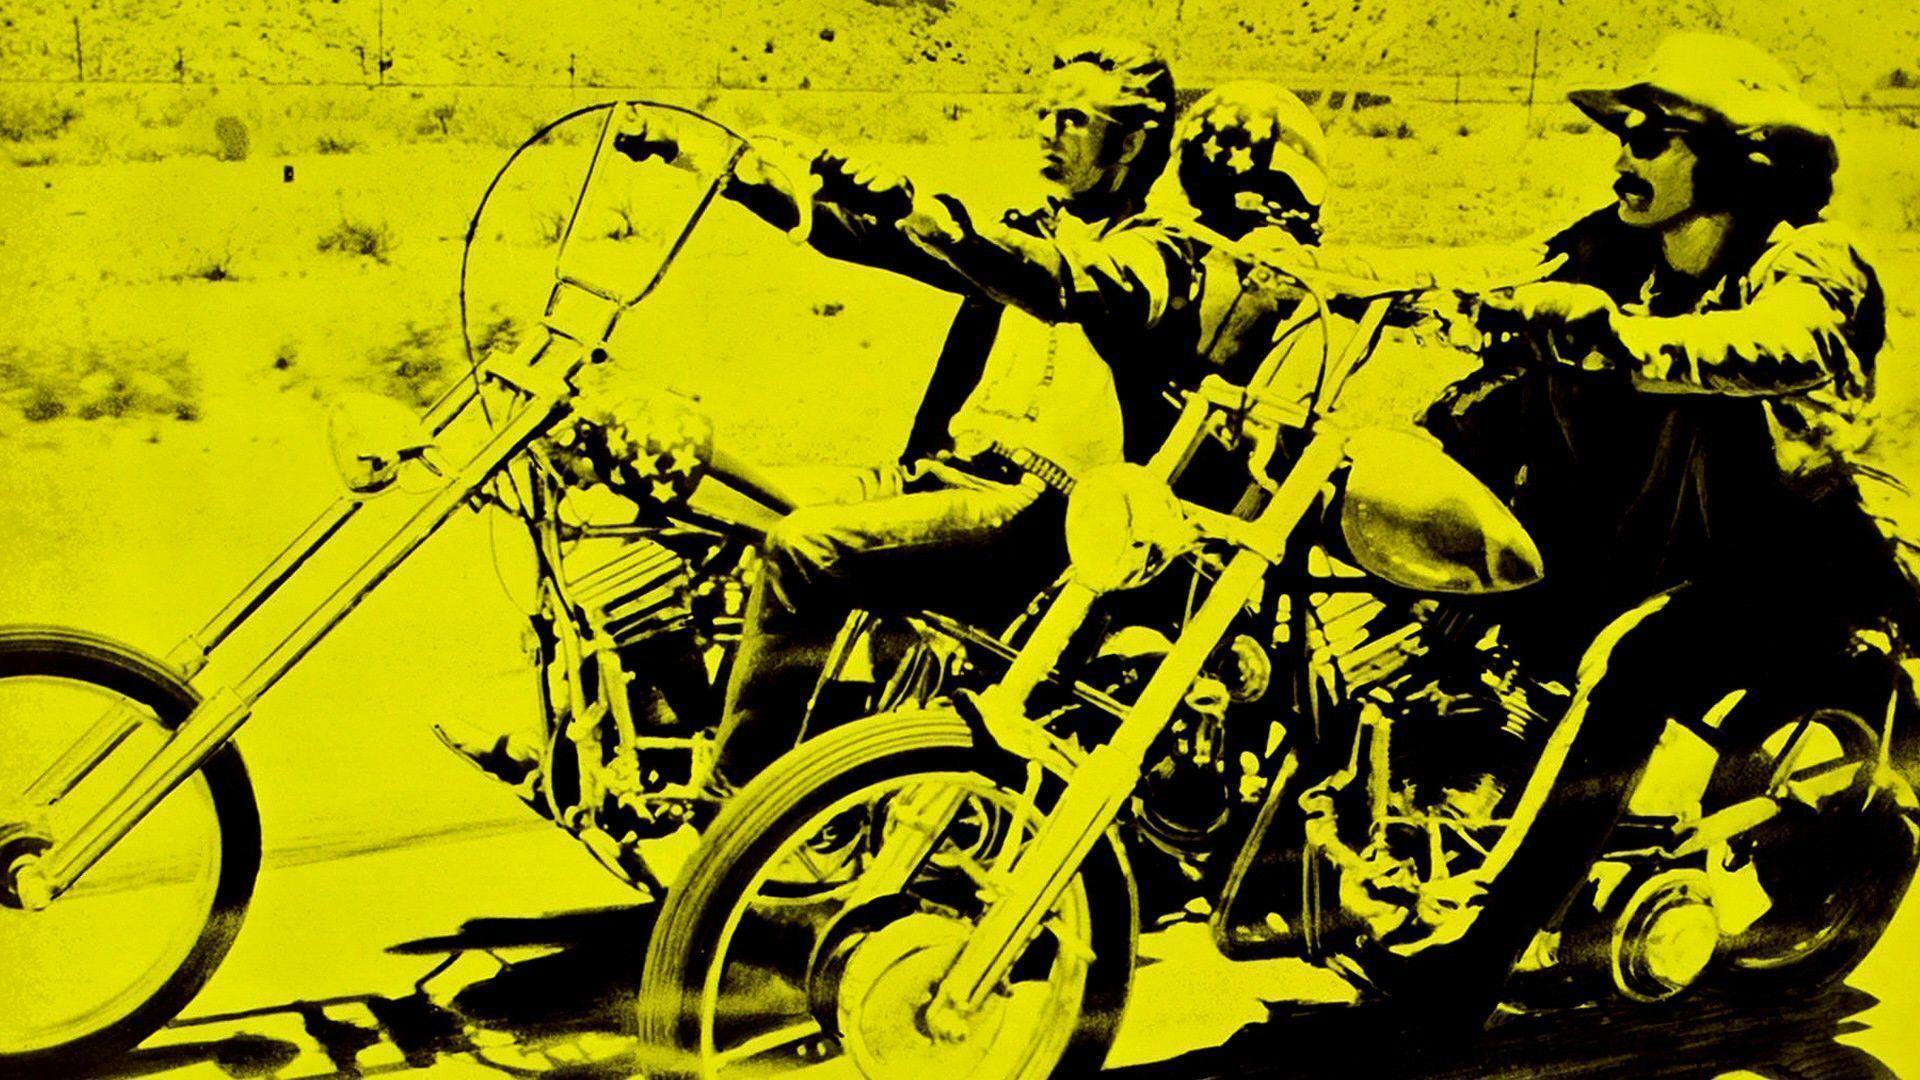 Easy Rider Wallpapers Wallpaper Cave HD Wallpapers Download Free Images Wallpaper [1000image.com]